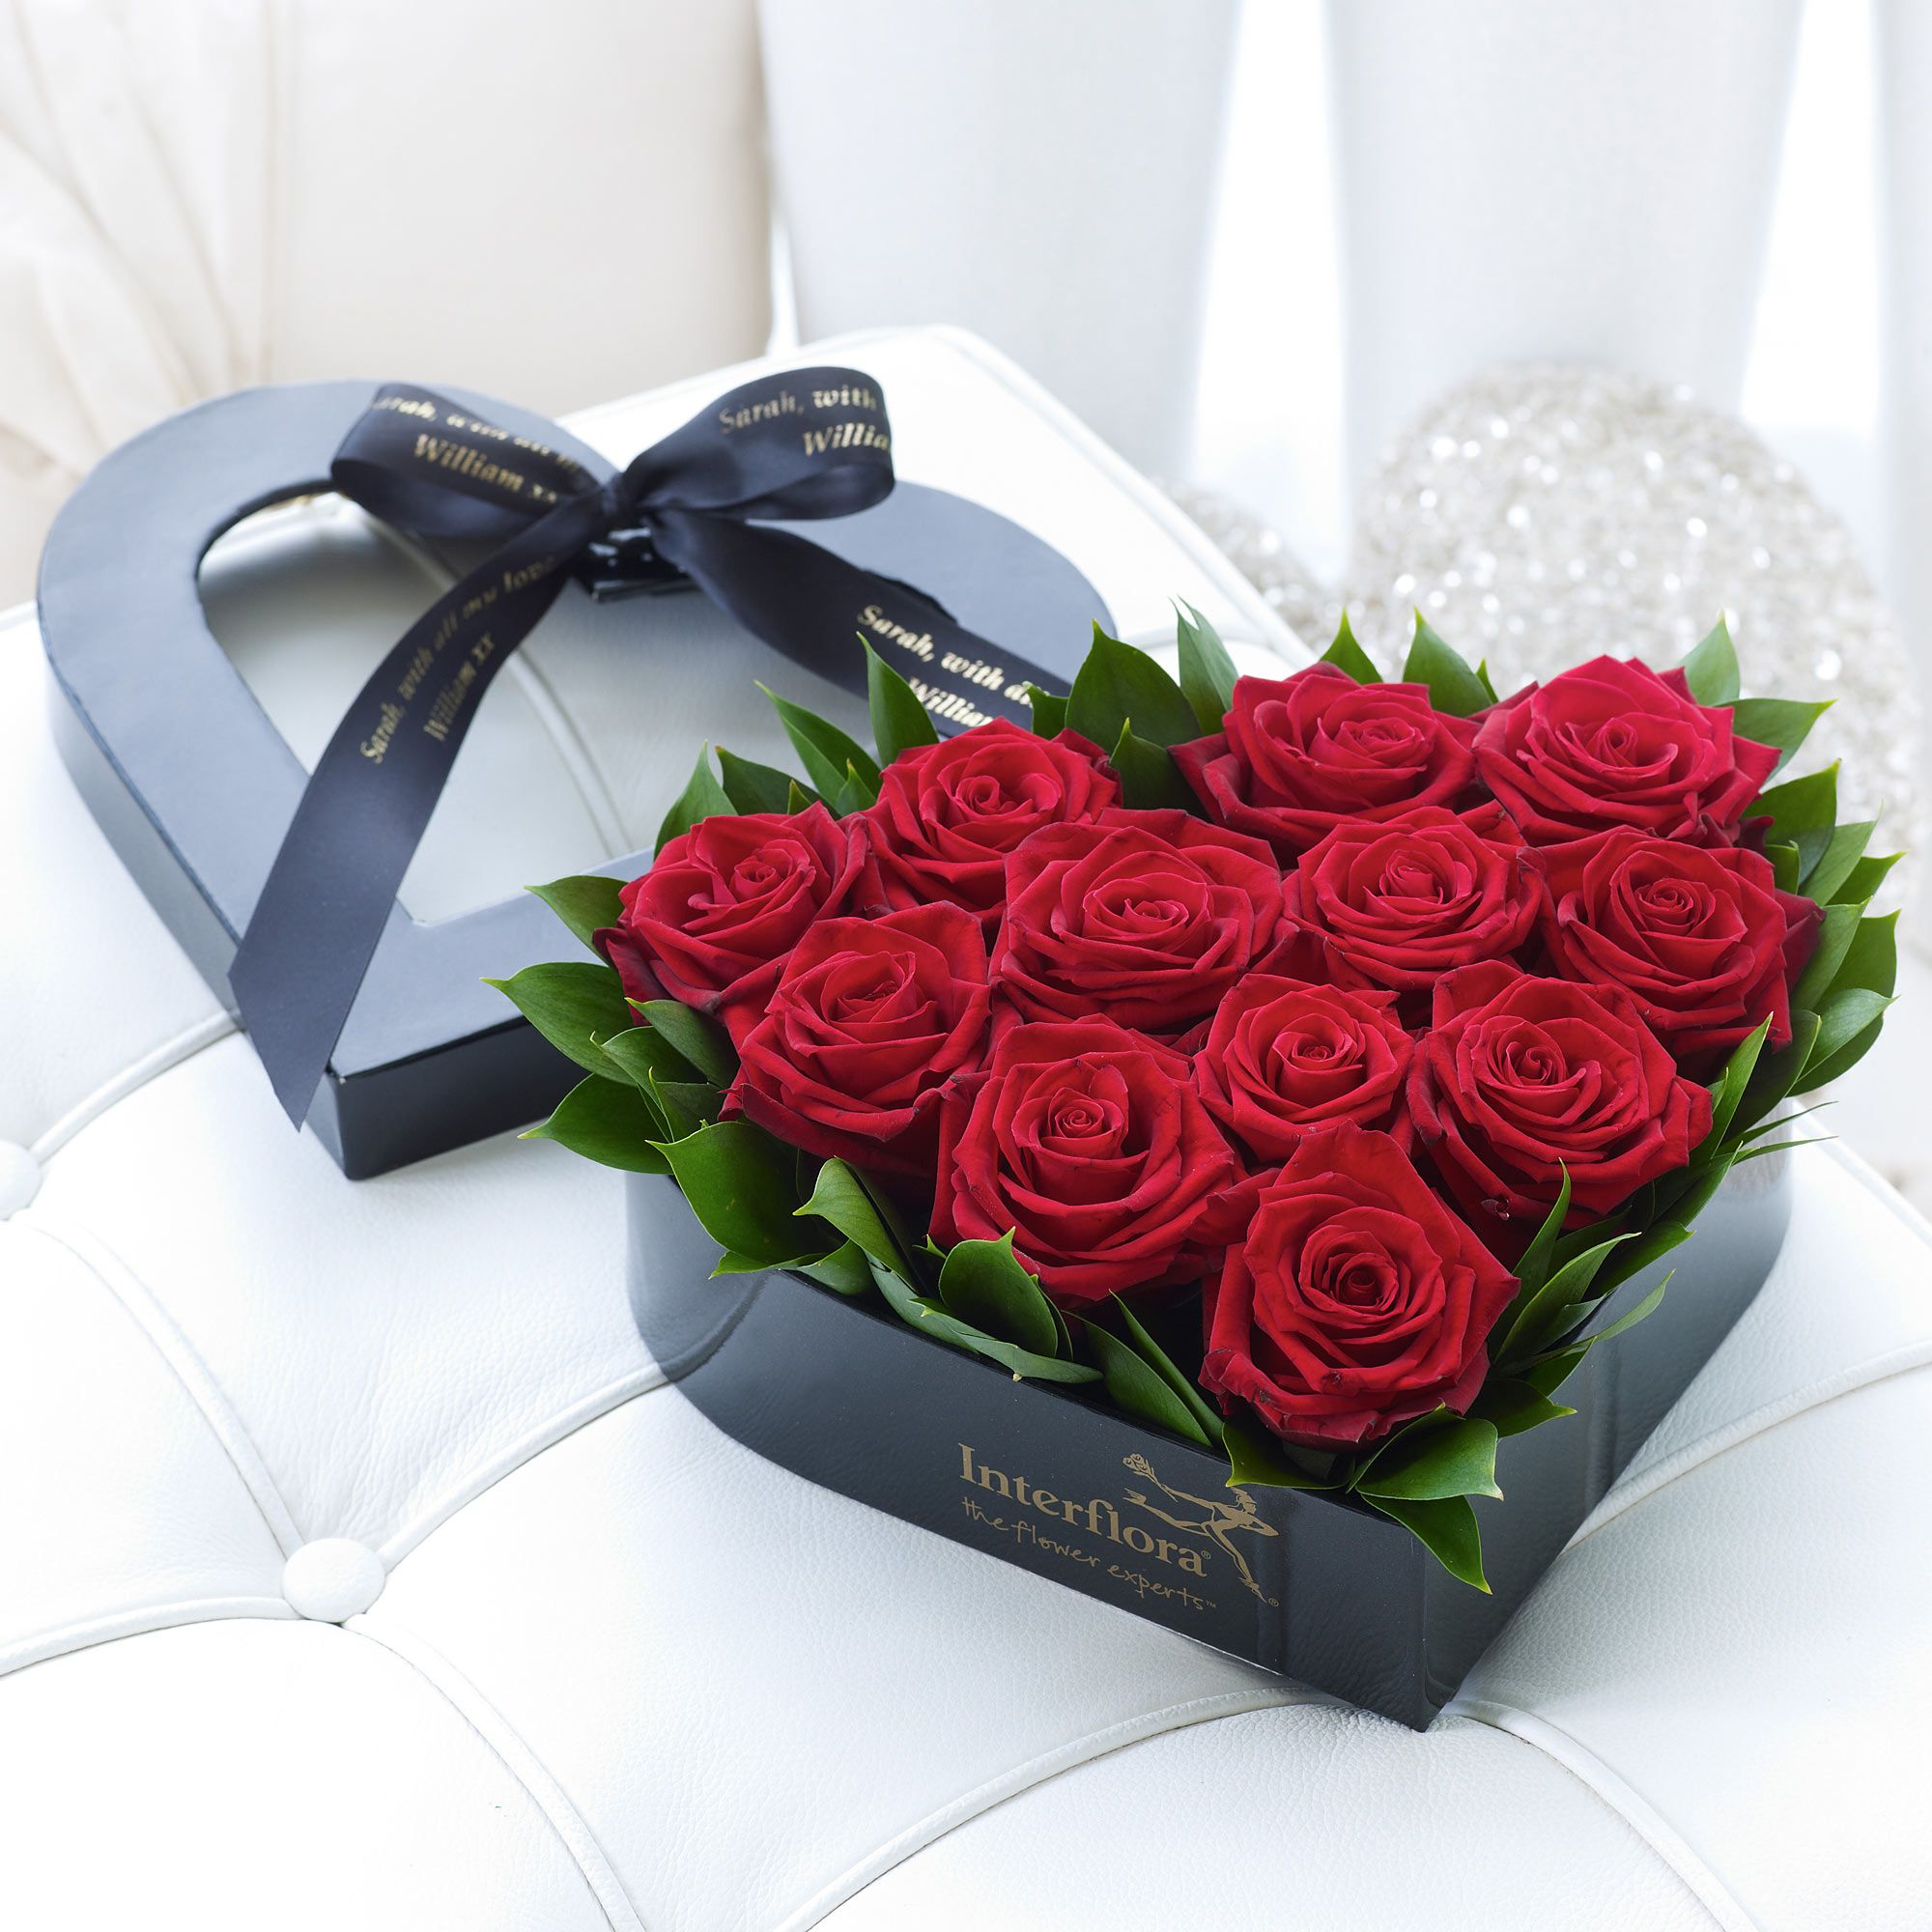 This heartshaped box of roses is a lovely romantic gift